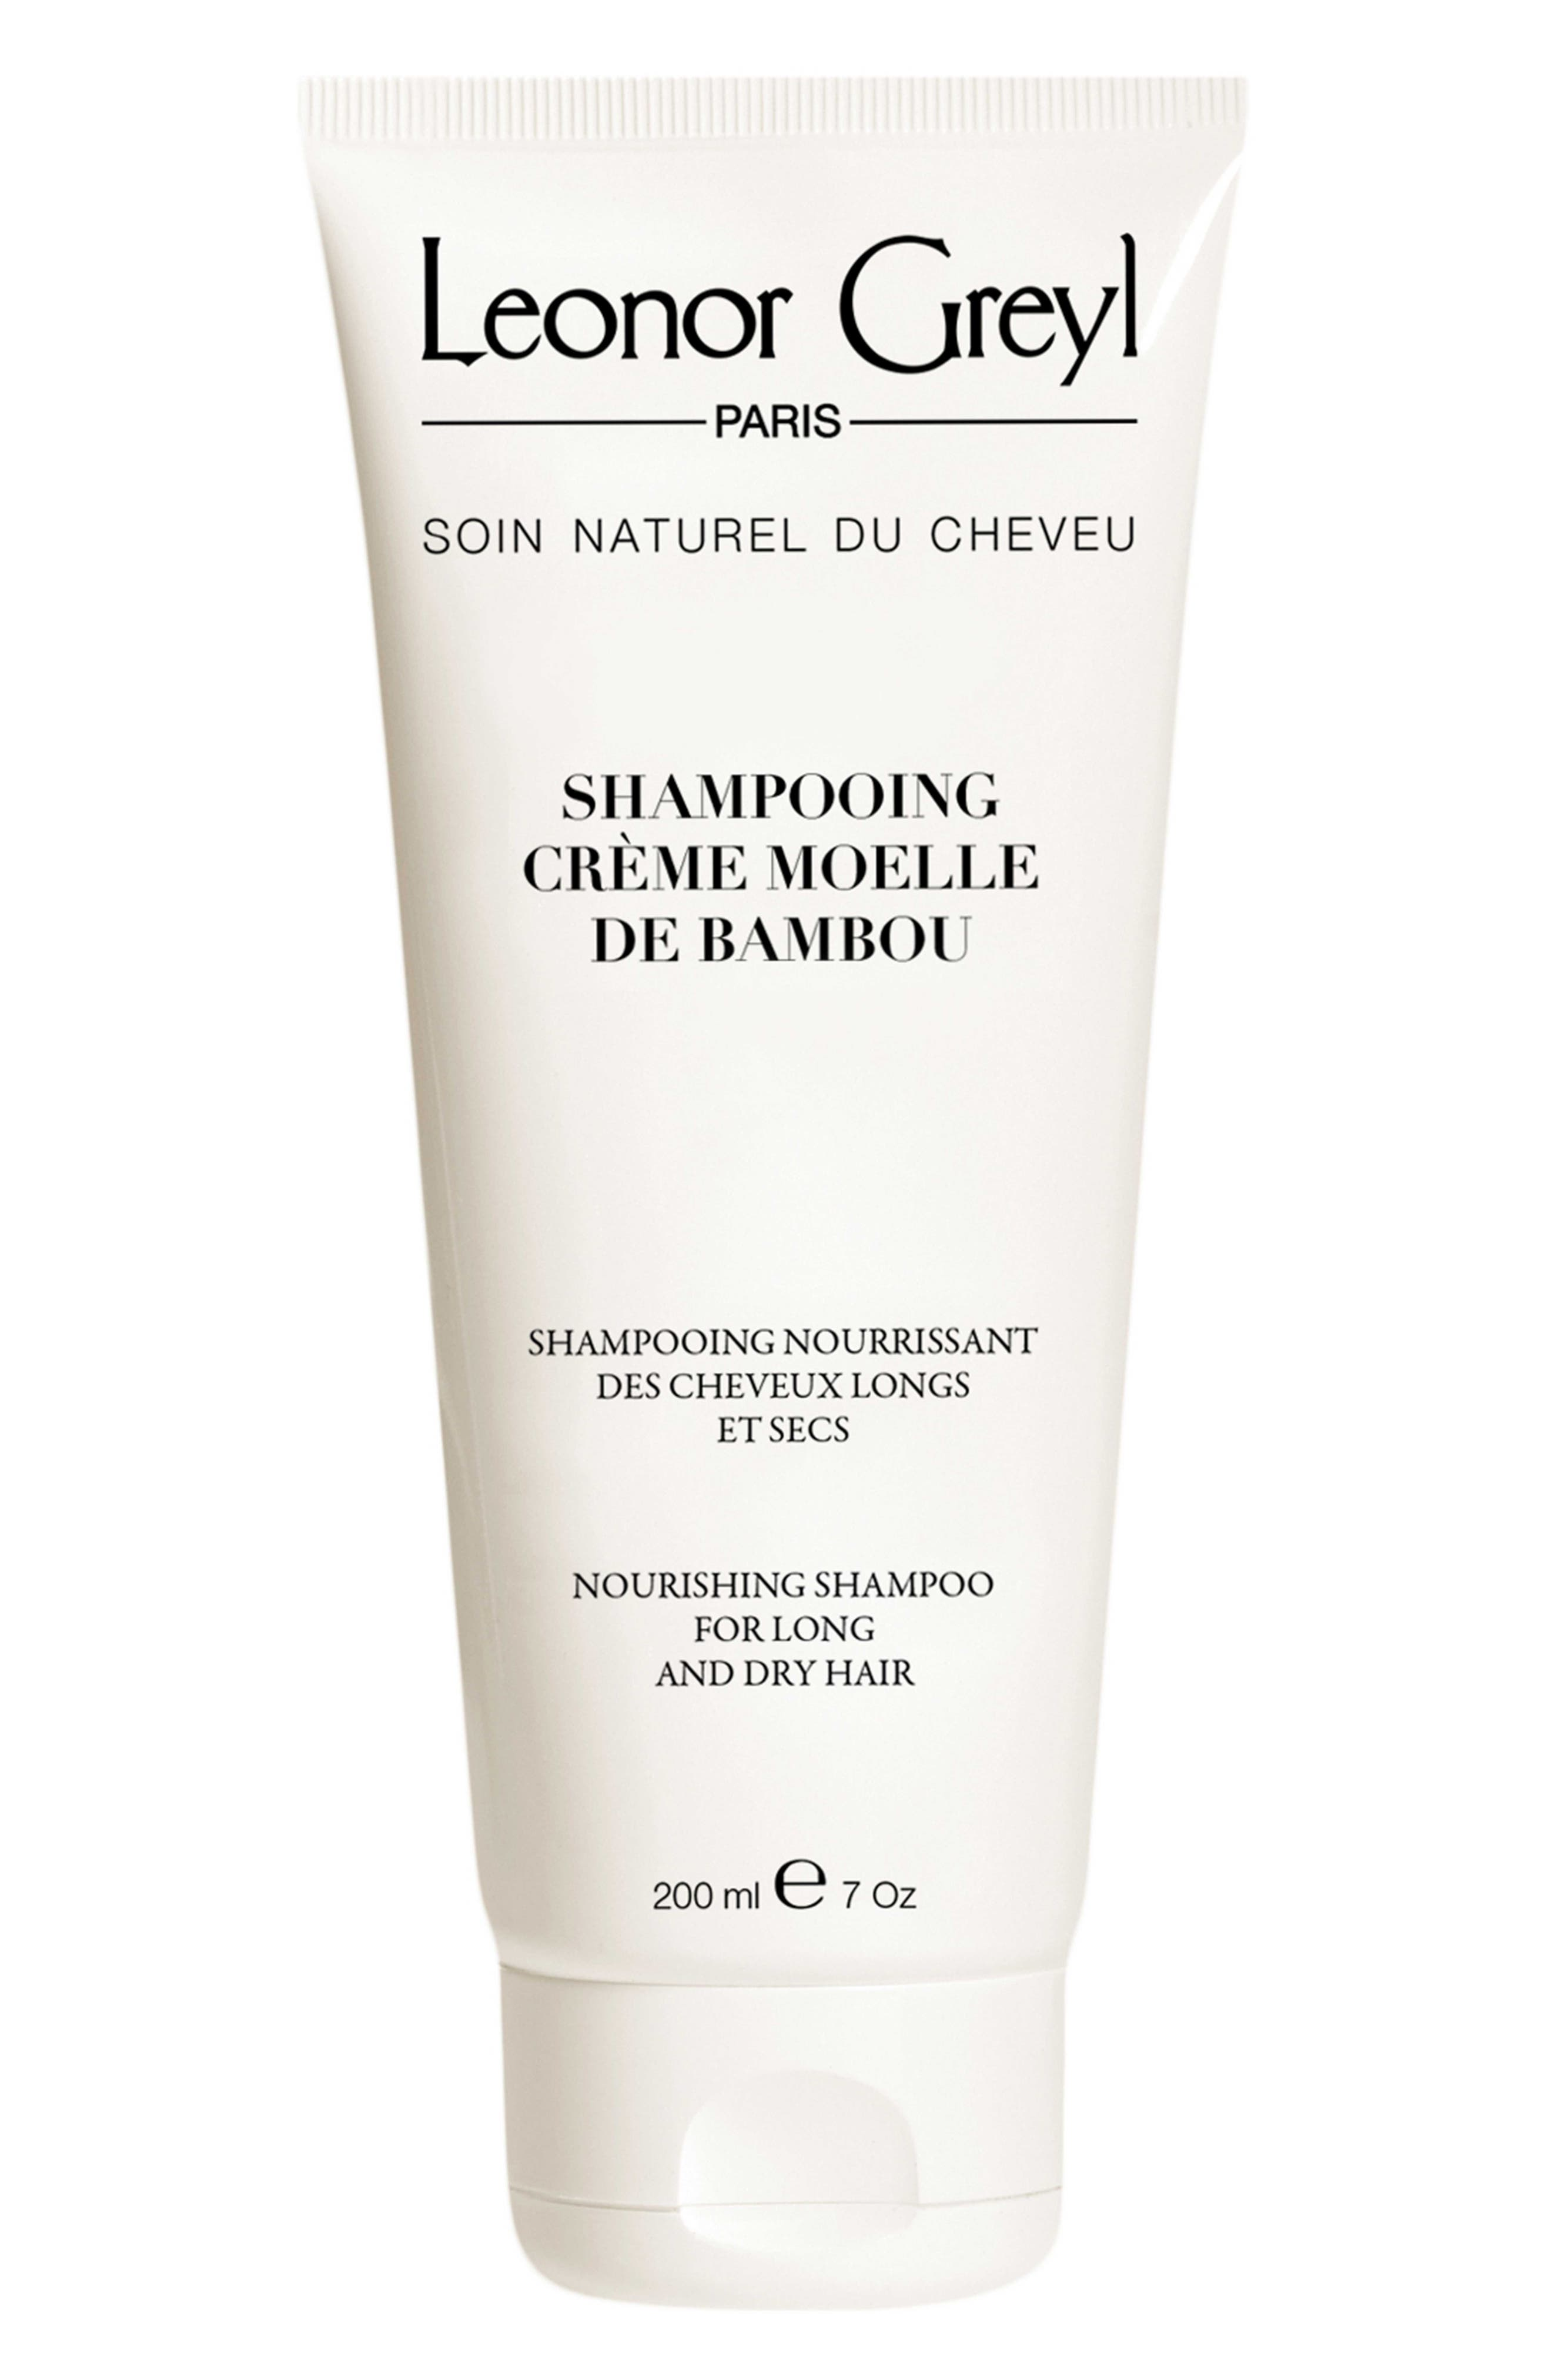 LEONOR GREYL PARIS, 'Crème Moelle de Bambou' Nourishing Shampoo, Main thumbnail 1, color, NO COLOR